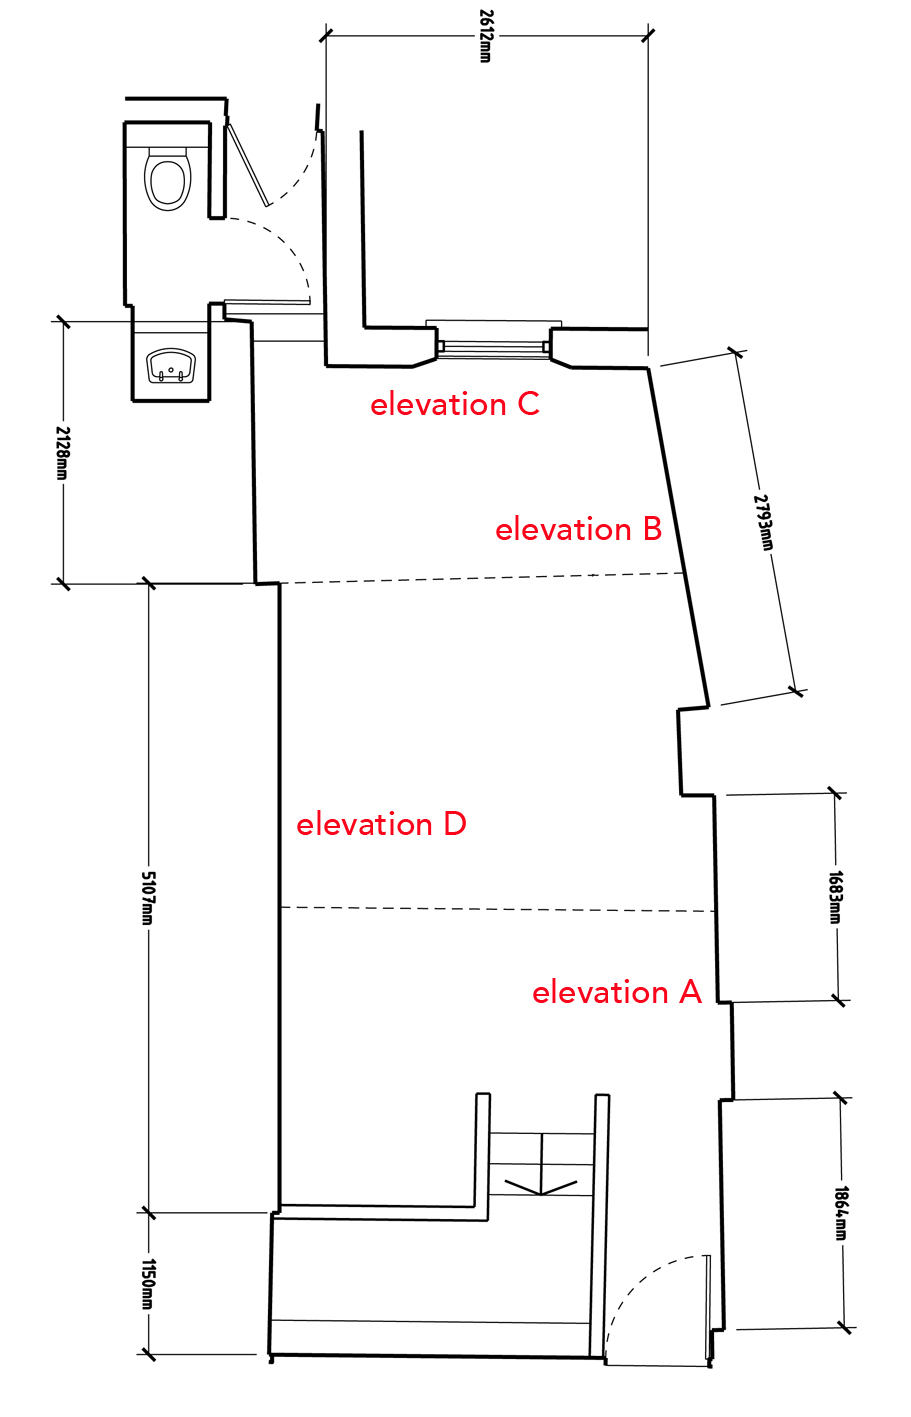 Floor plan of the gallery to scale